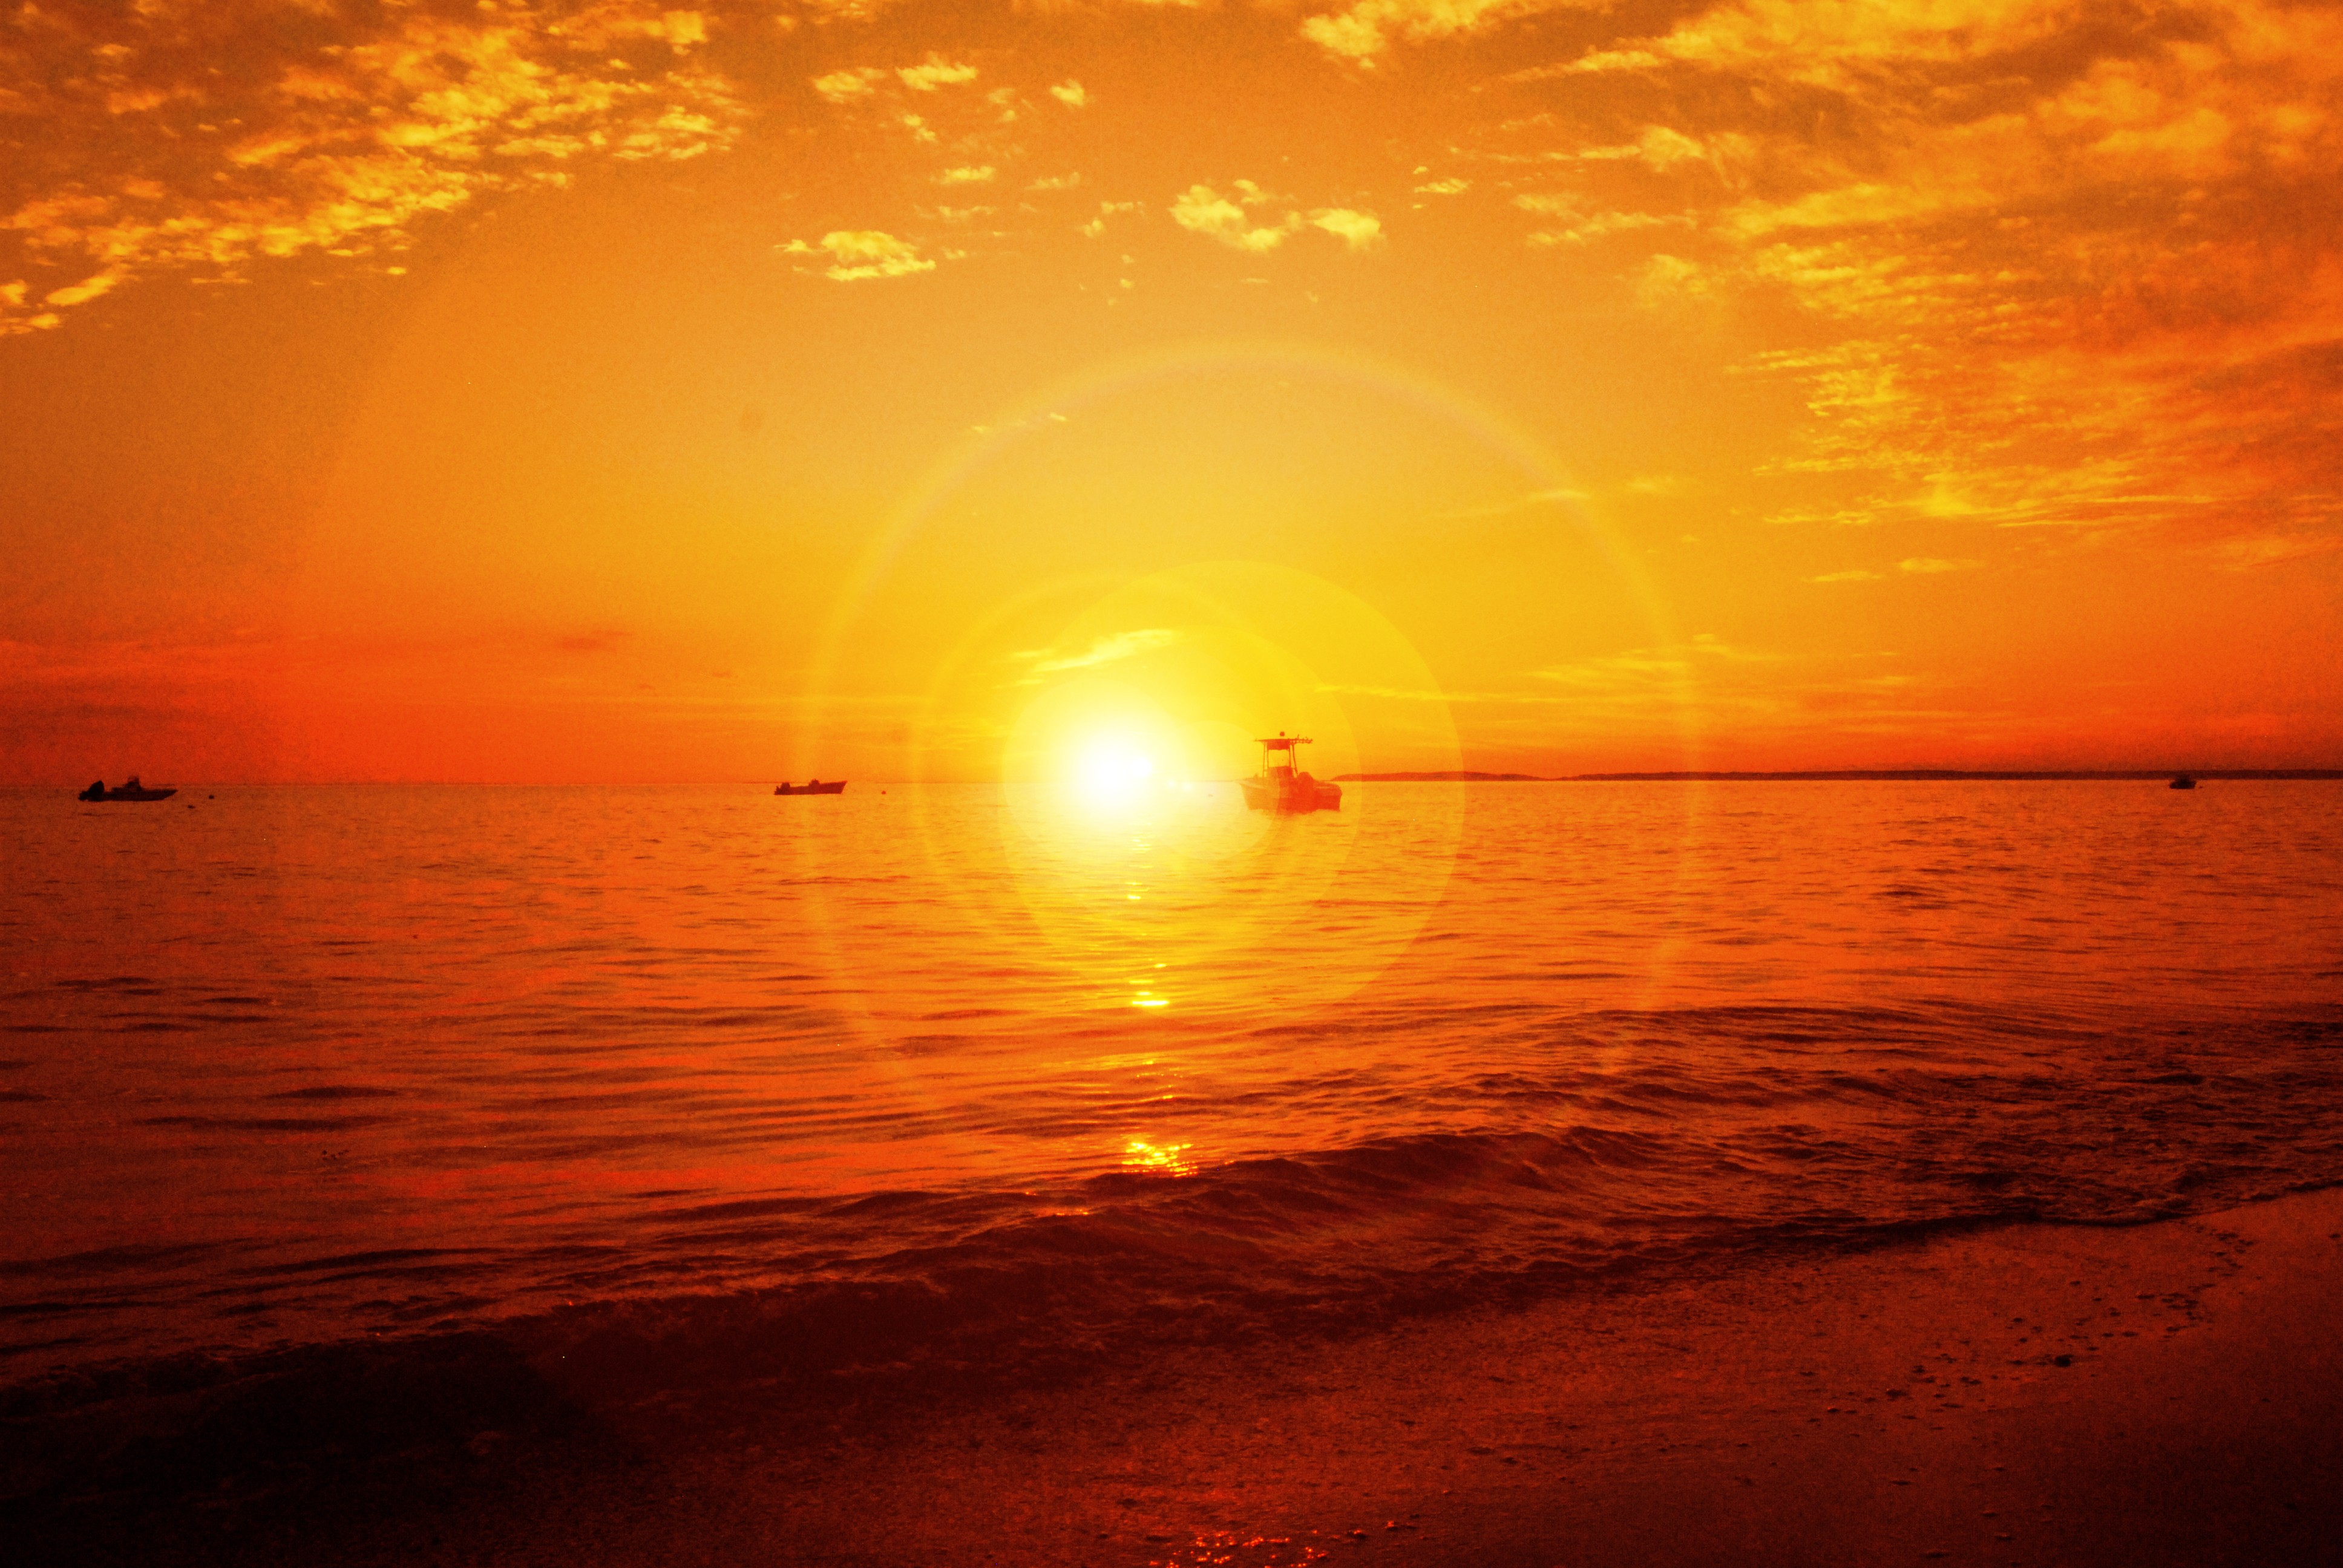 sunset sun orange abc HD Wallpaper